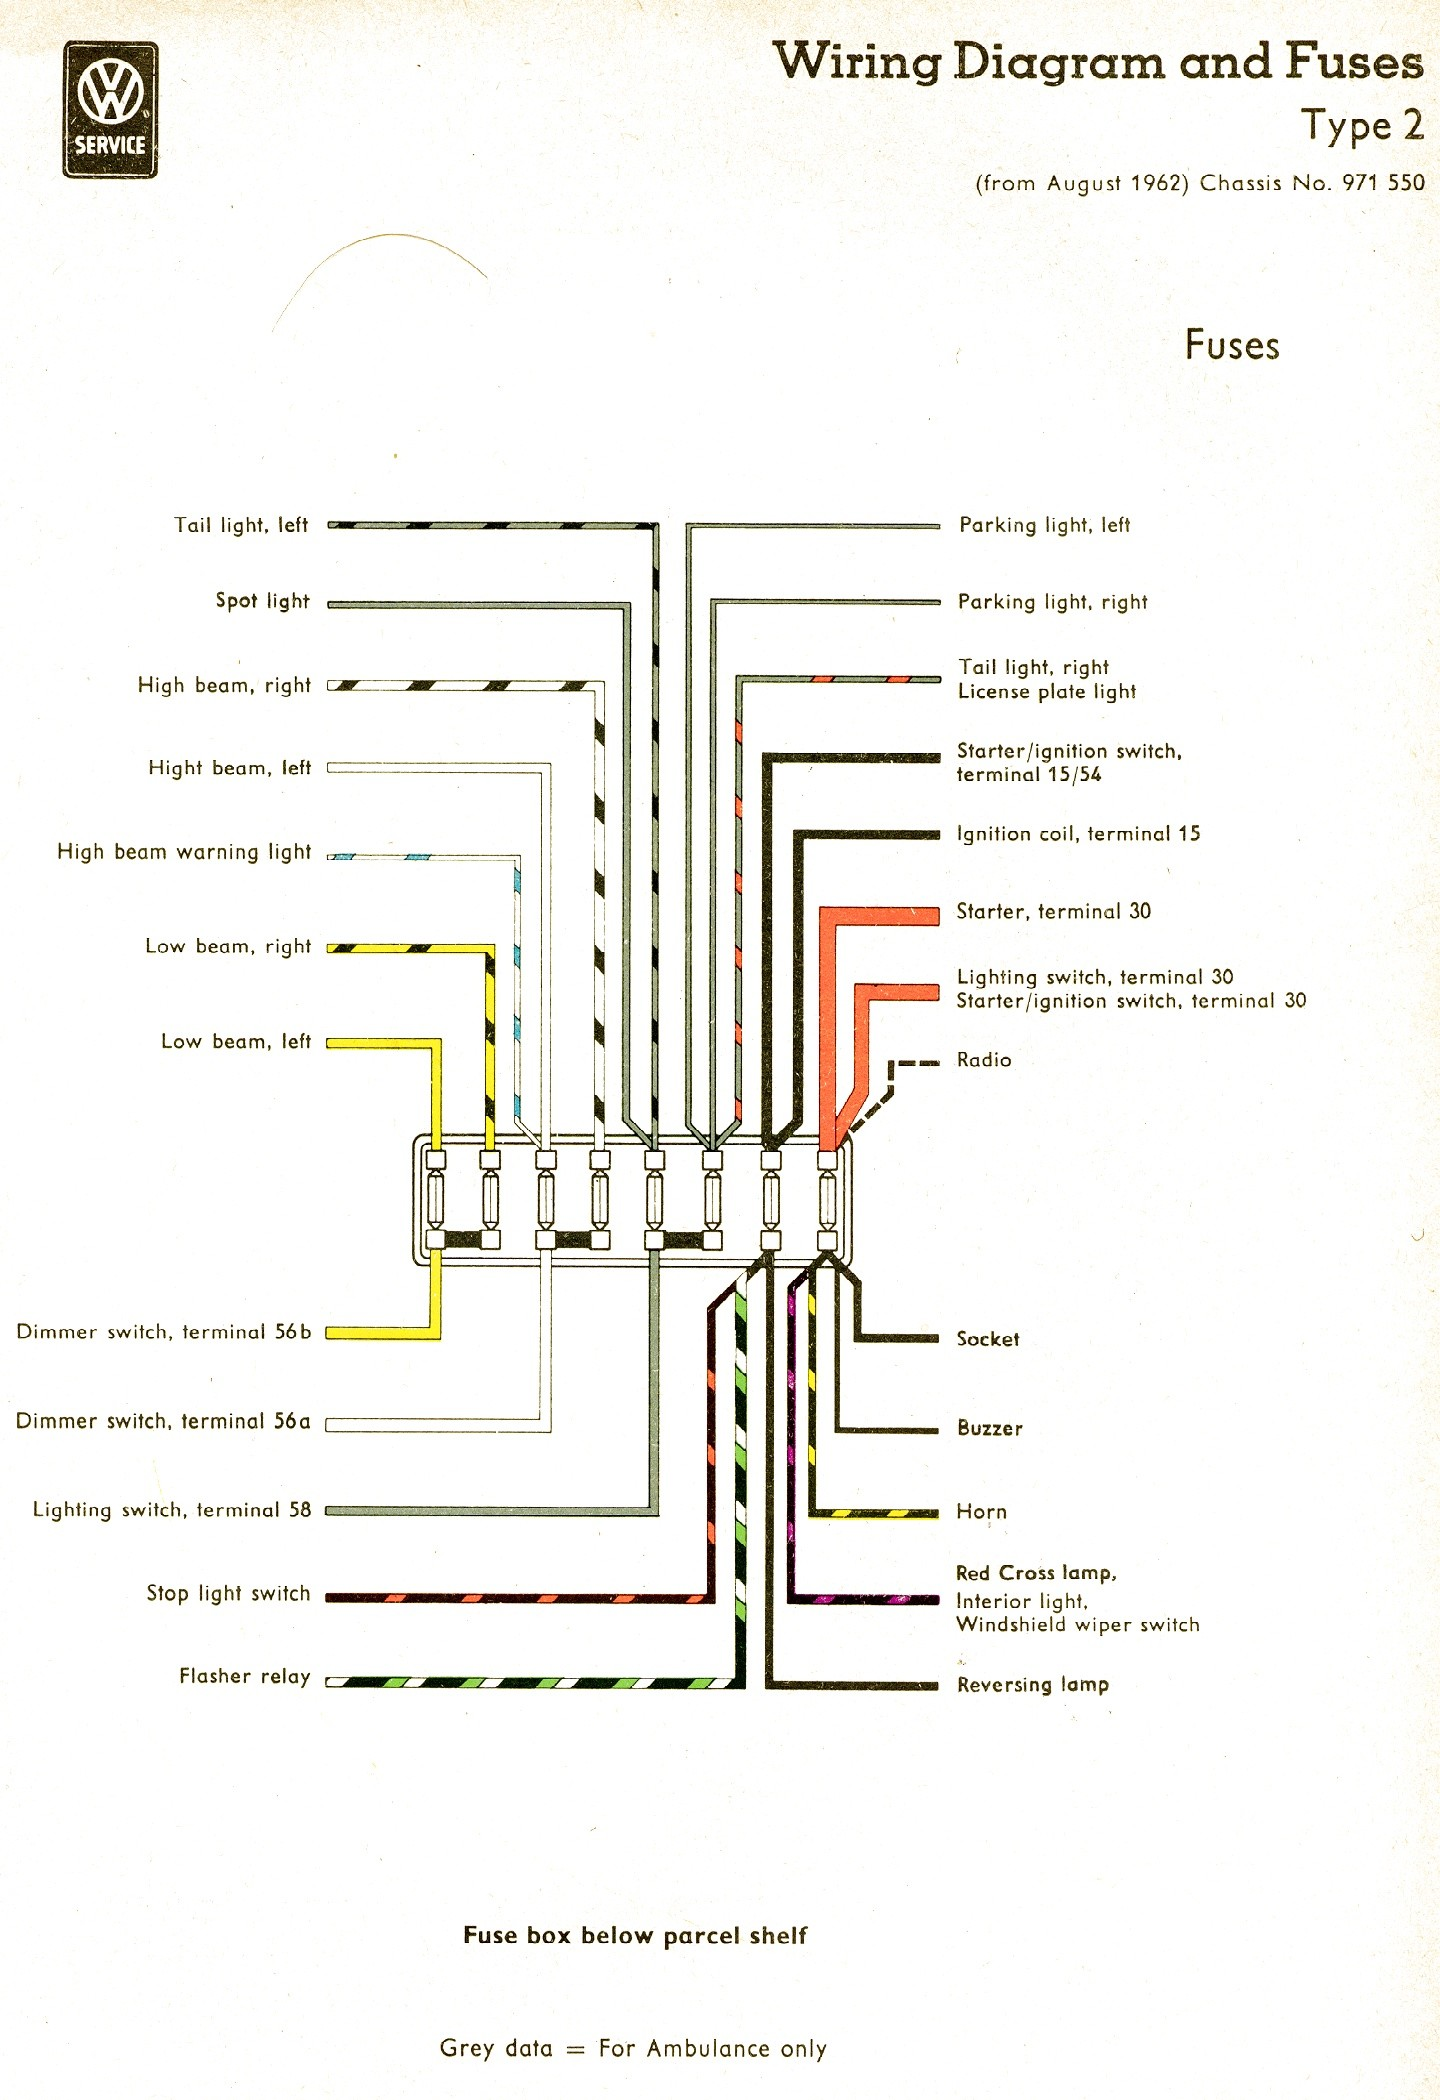 Car Fuse Box Diagrams Well Vw Beetle Fuse Box Diagram 1973 Super Beetle  Fuse Box Of